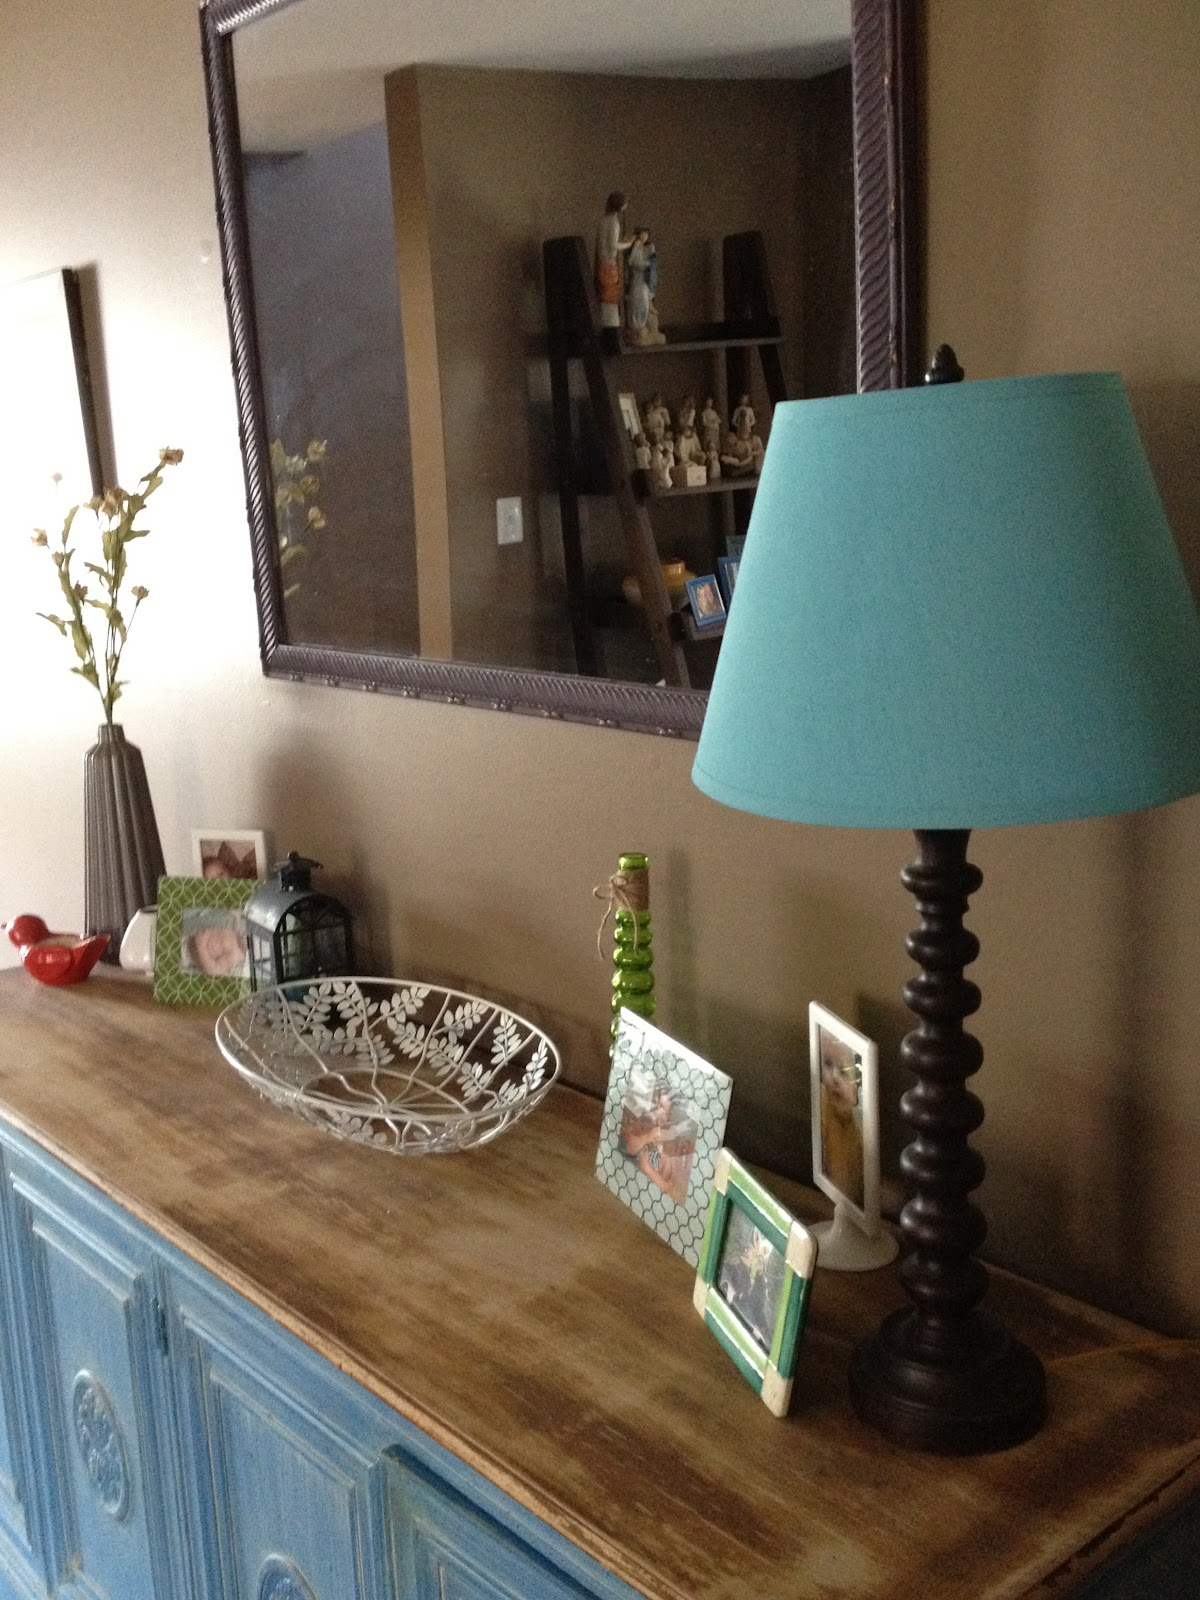 Diy Lamp Shade Revamp With Spray Paint Kasey Trenum